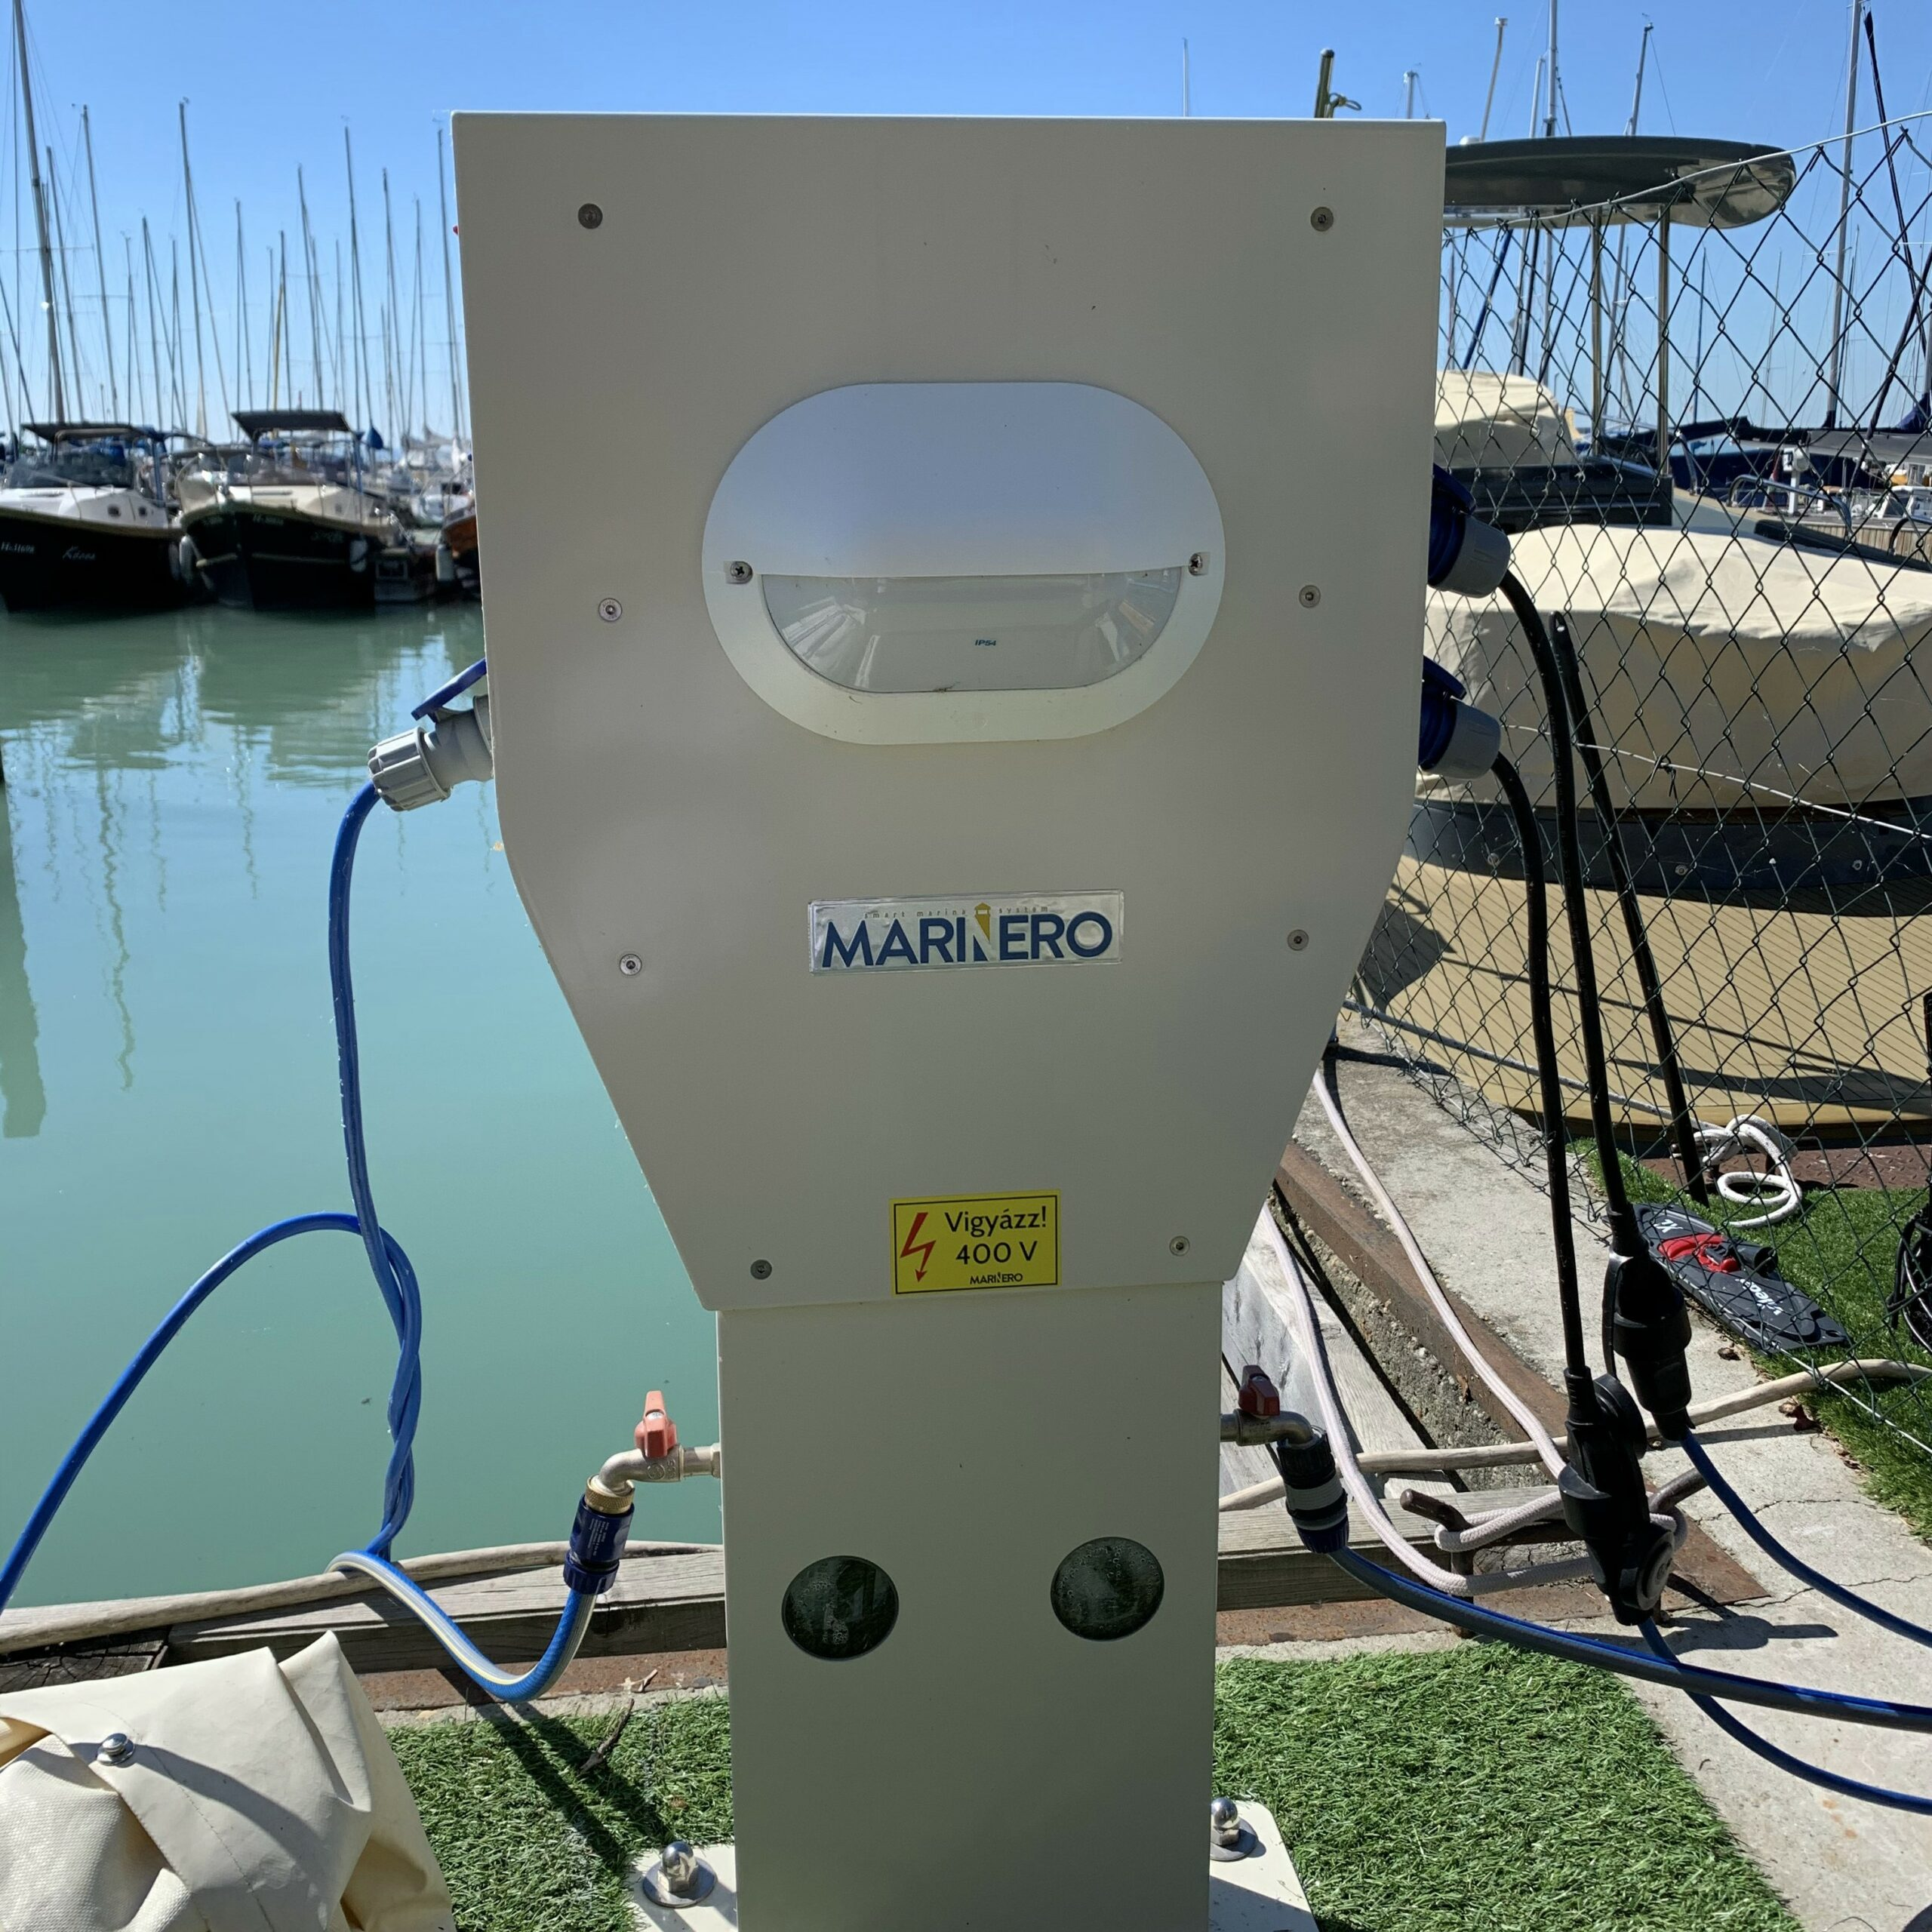 Marinero Smart Pedestal in Balatonfo Yacht Club Balatonkenese